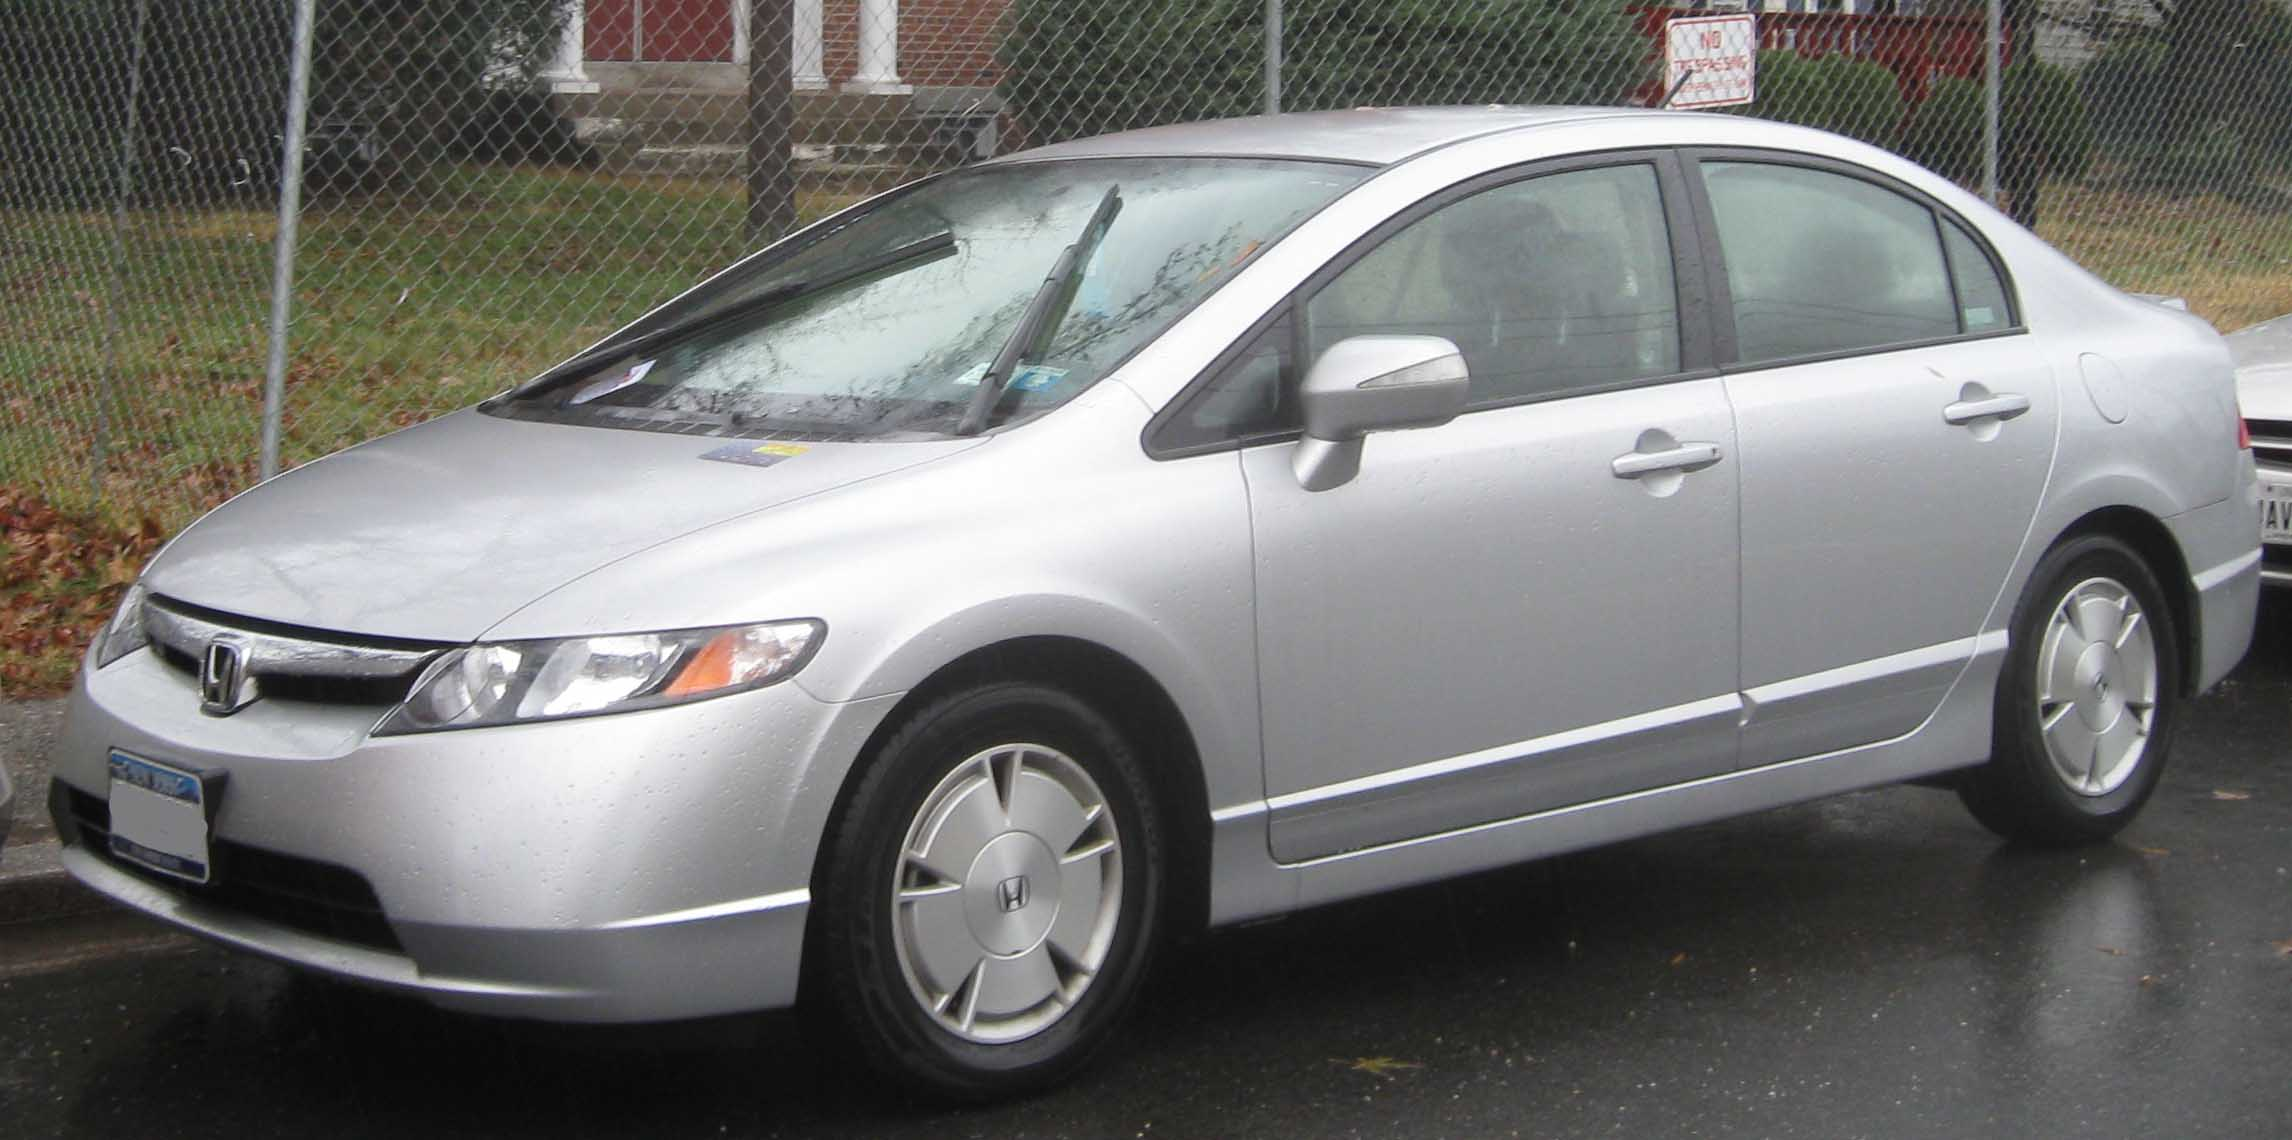 2008 Honda Civic #7